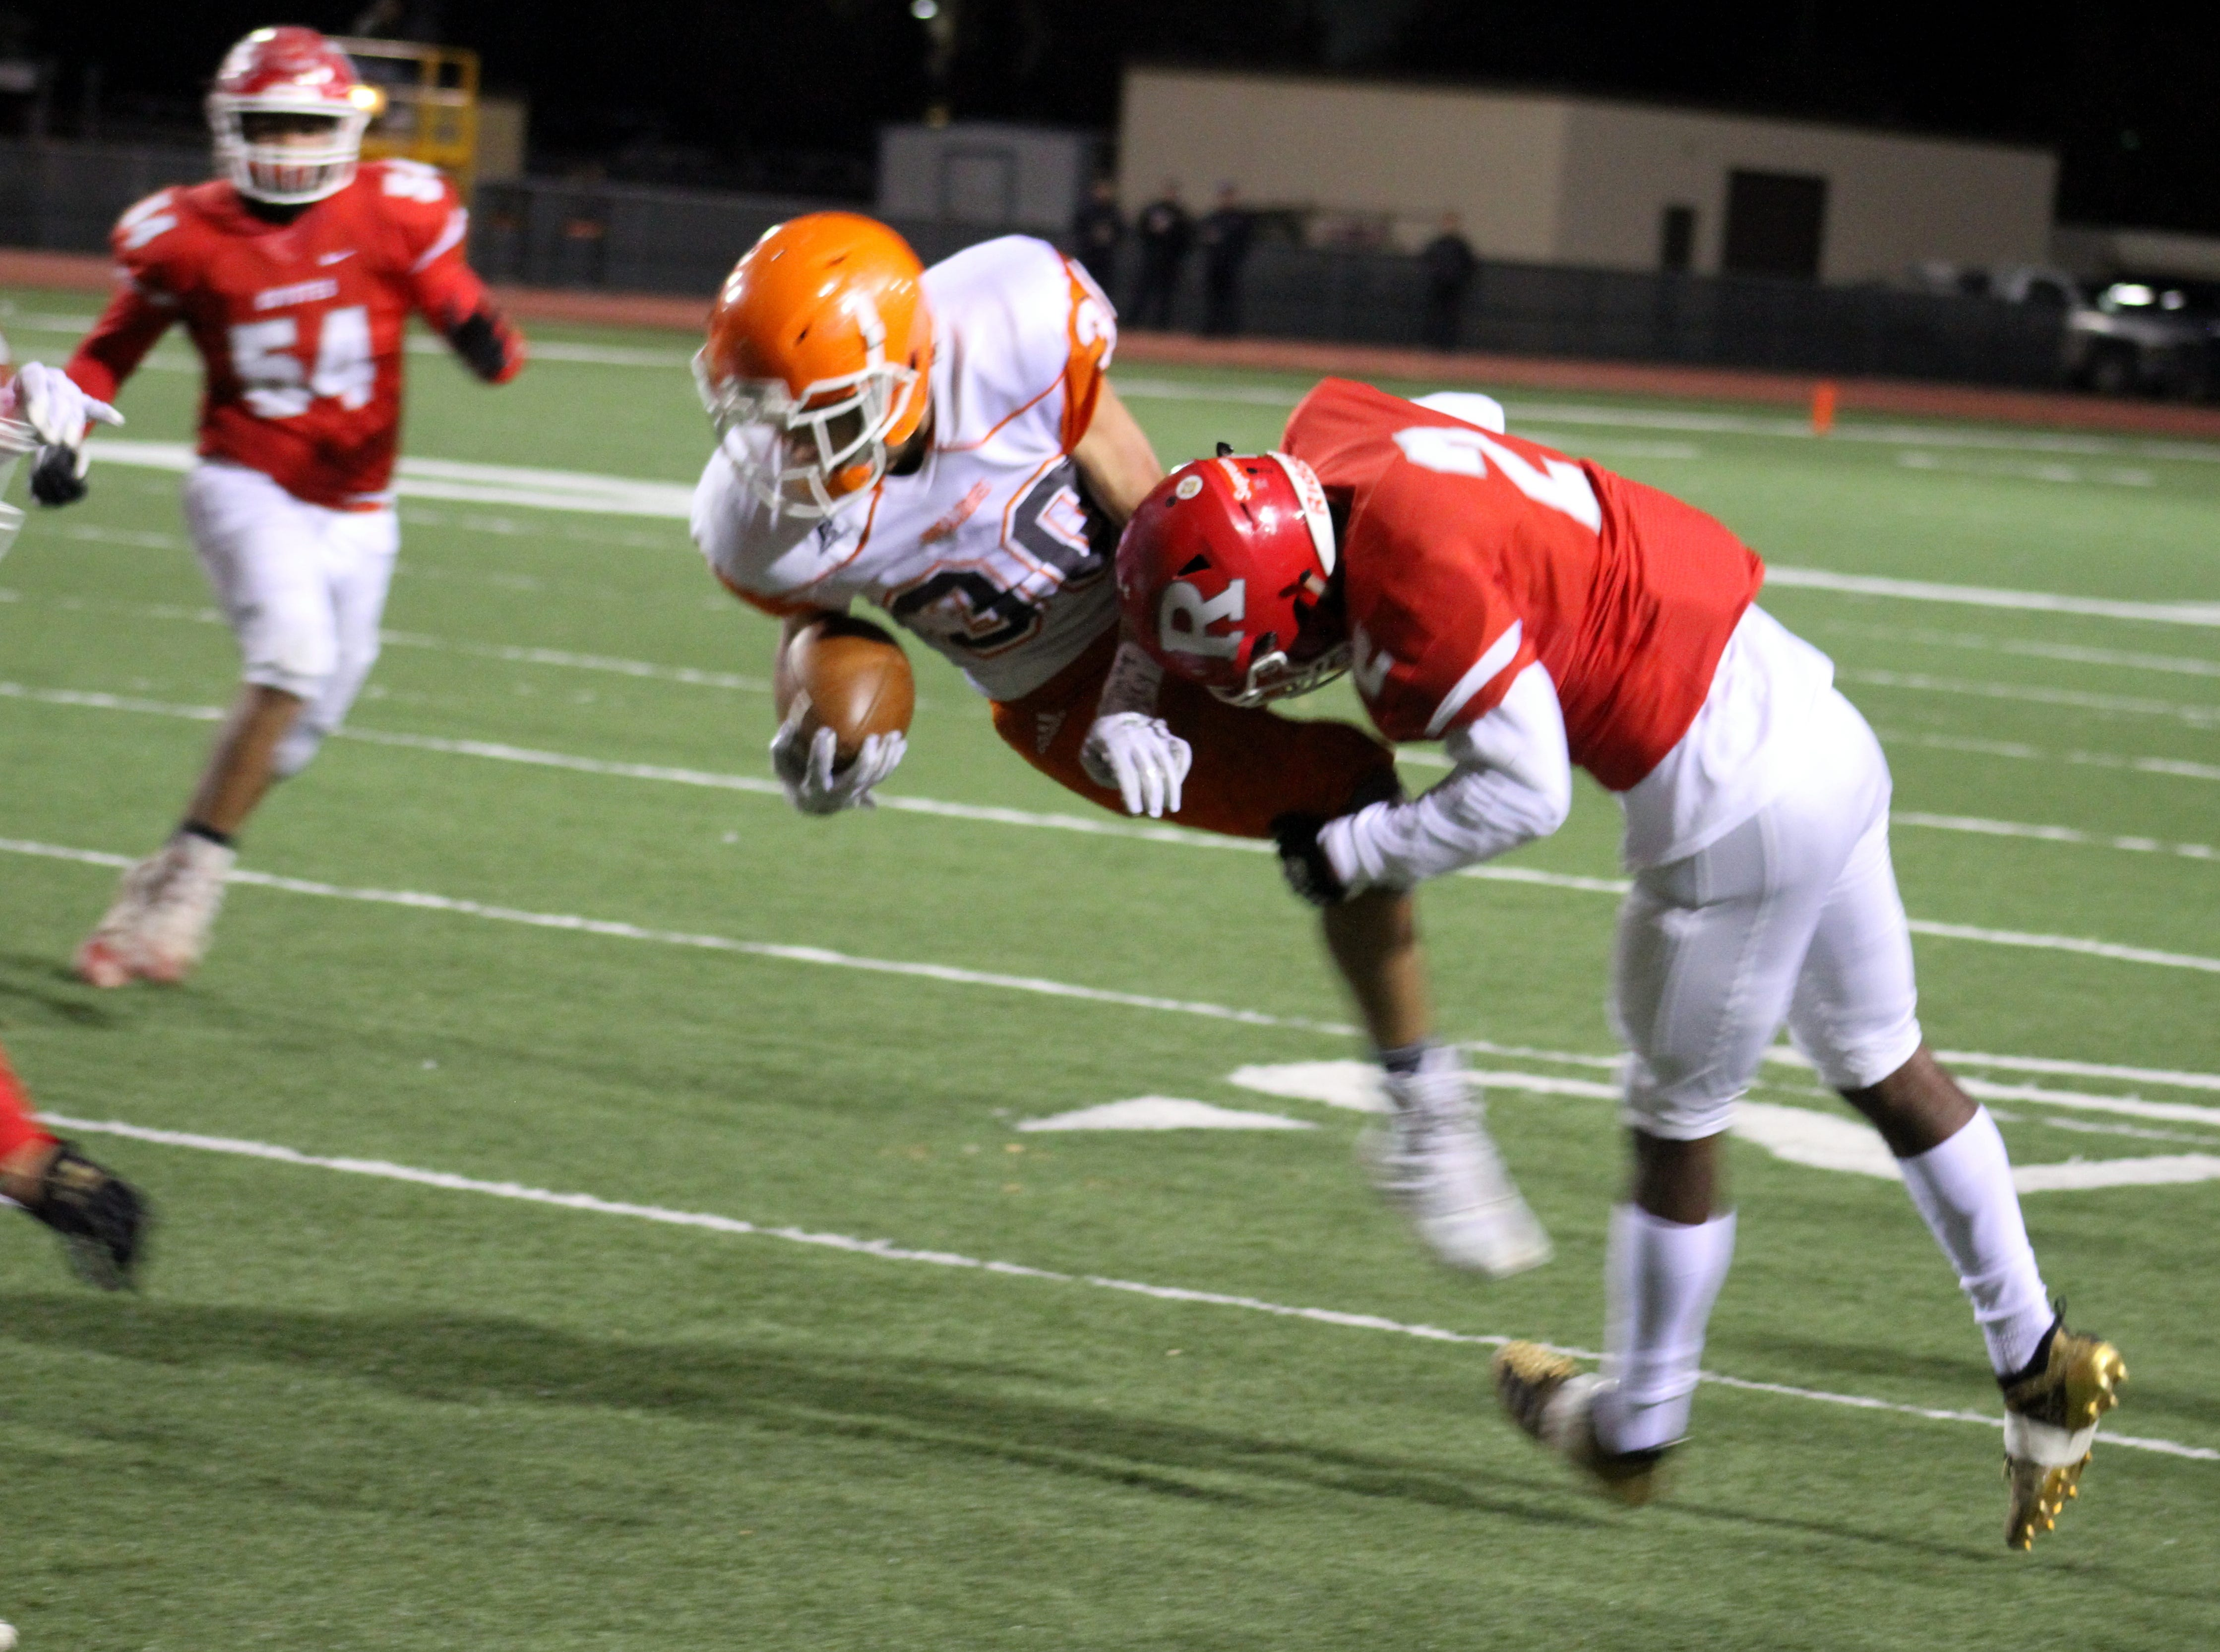 Artesia's Jagger Donaghe (30) is brought down by Roswell's Jasia Reese during Friday's Class 5A semifinal game.